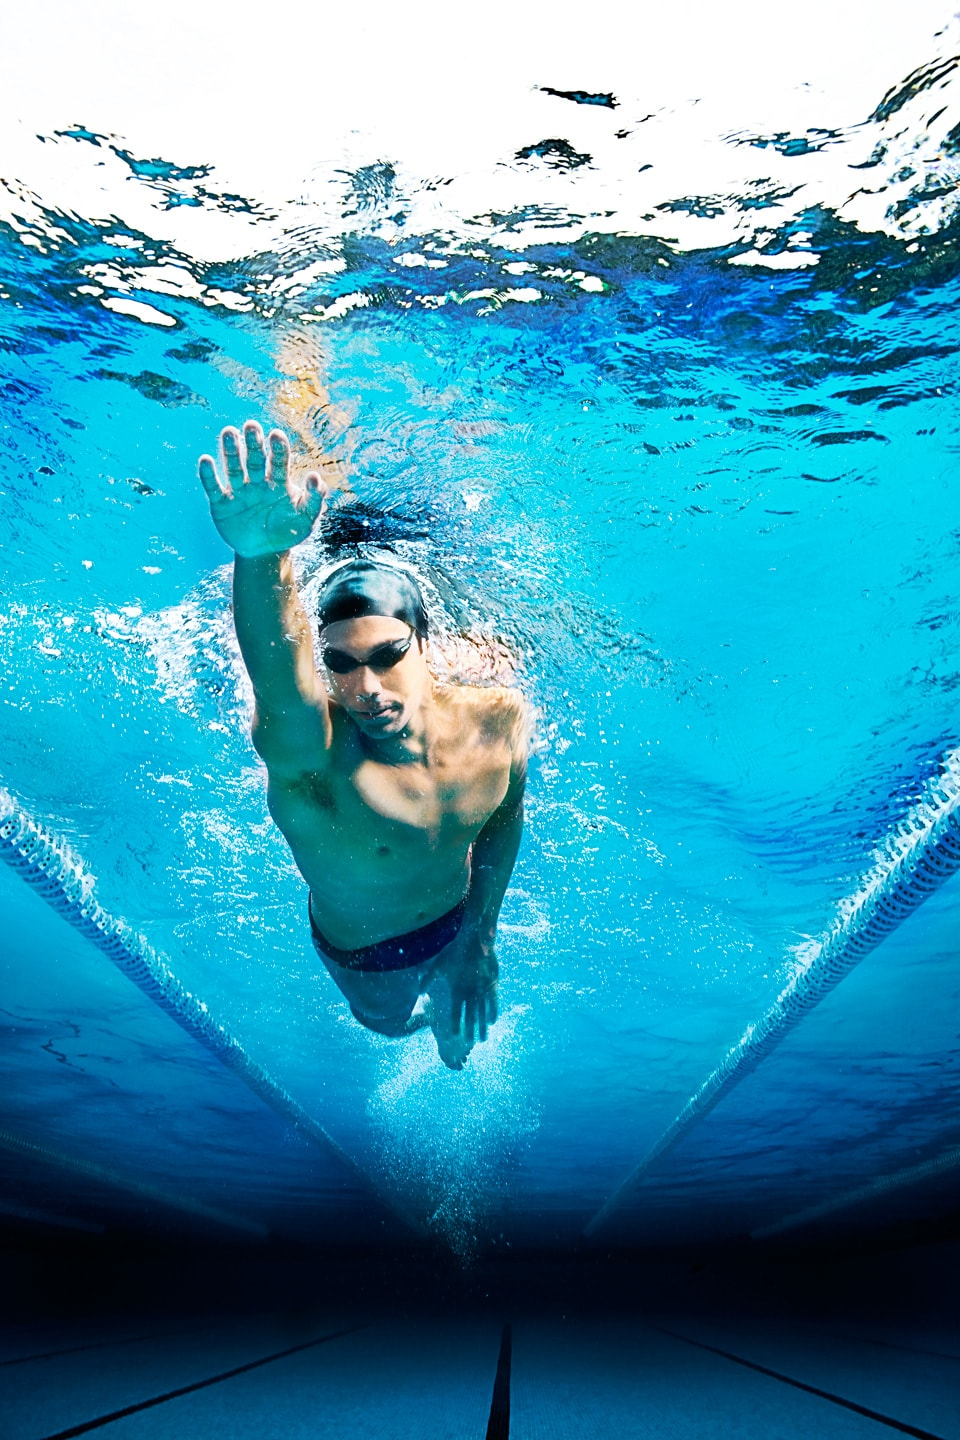 swimmer-sports-photography-miami-marcel-boldu.jpg